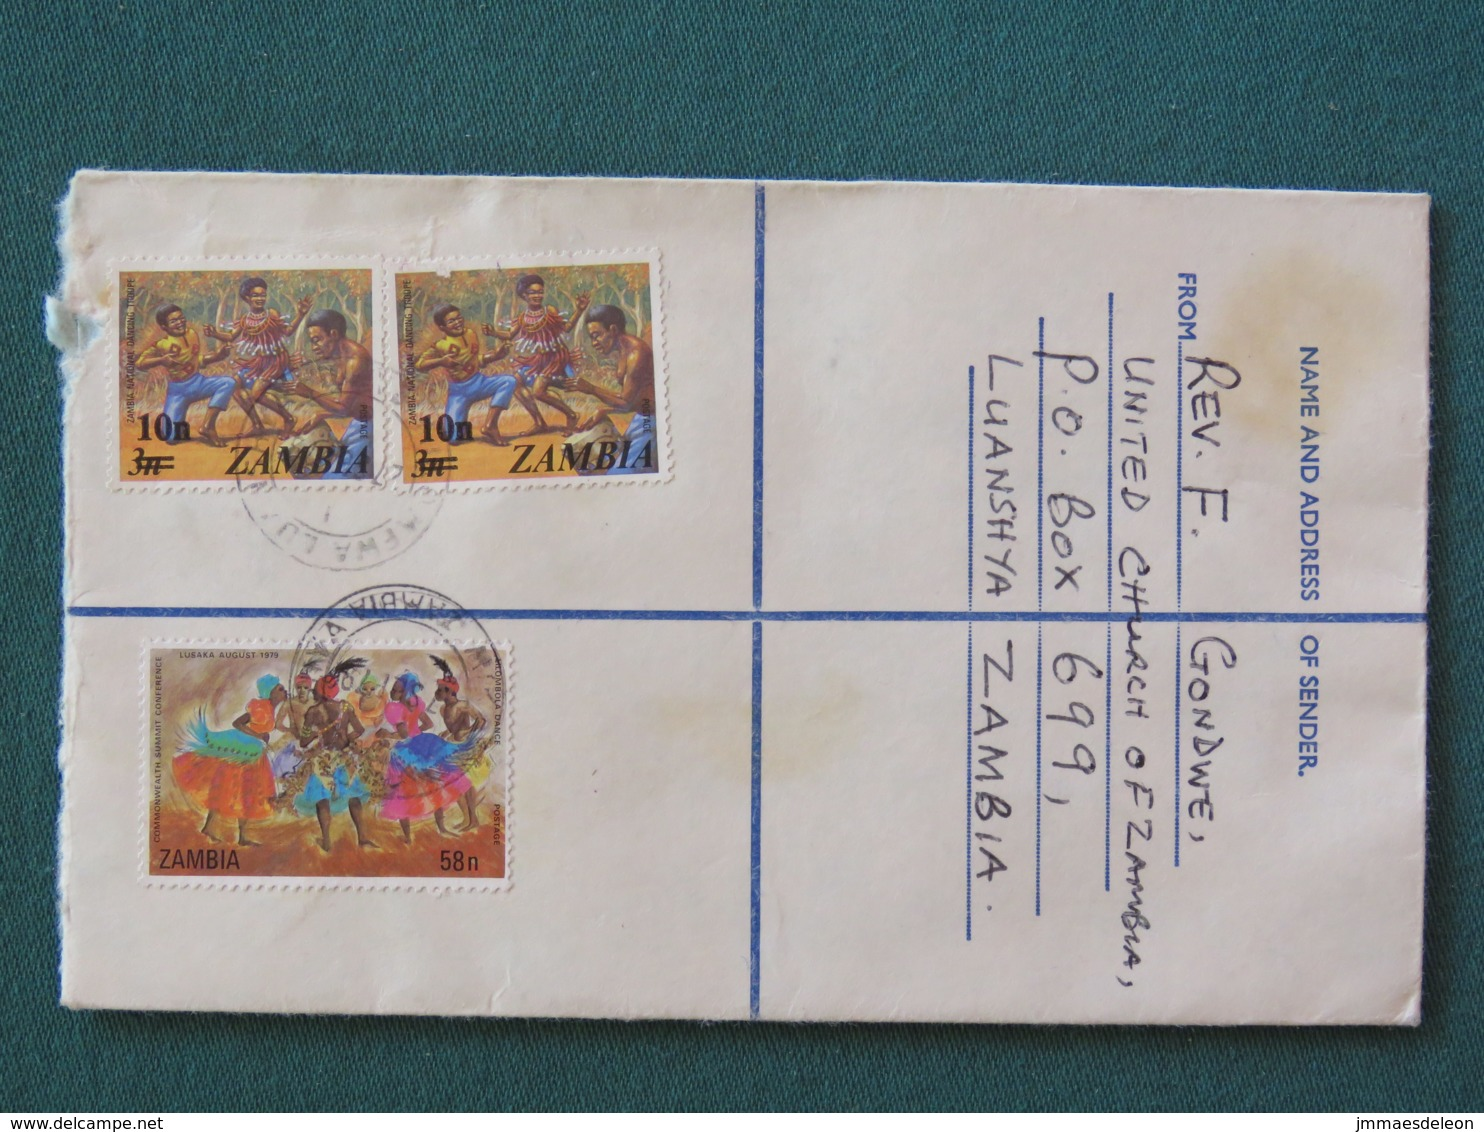 Zambia 1979 Registered Cover To England - Dance - Zambie (1965-...)